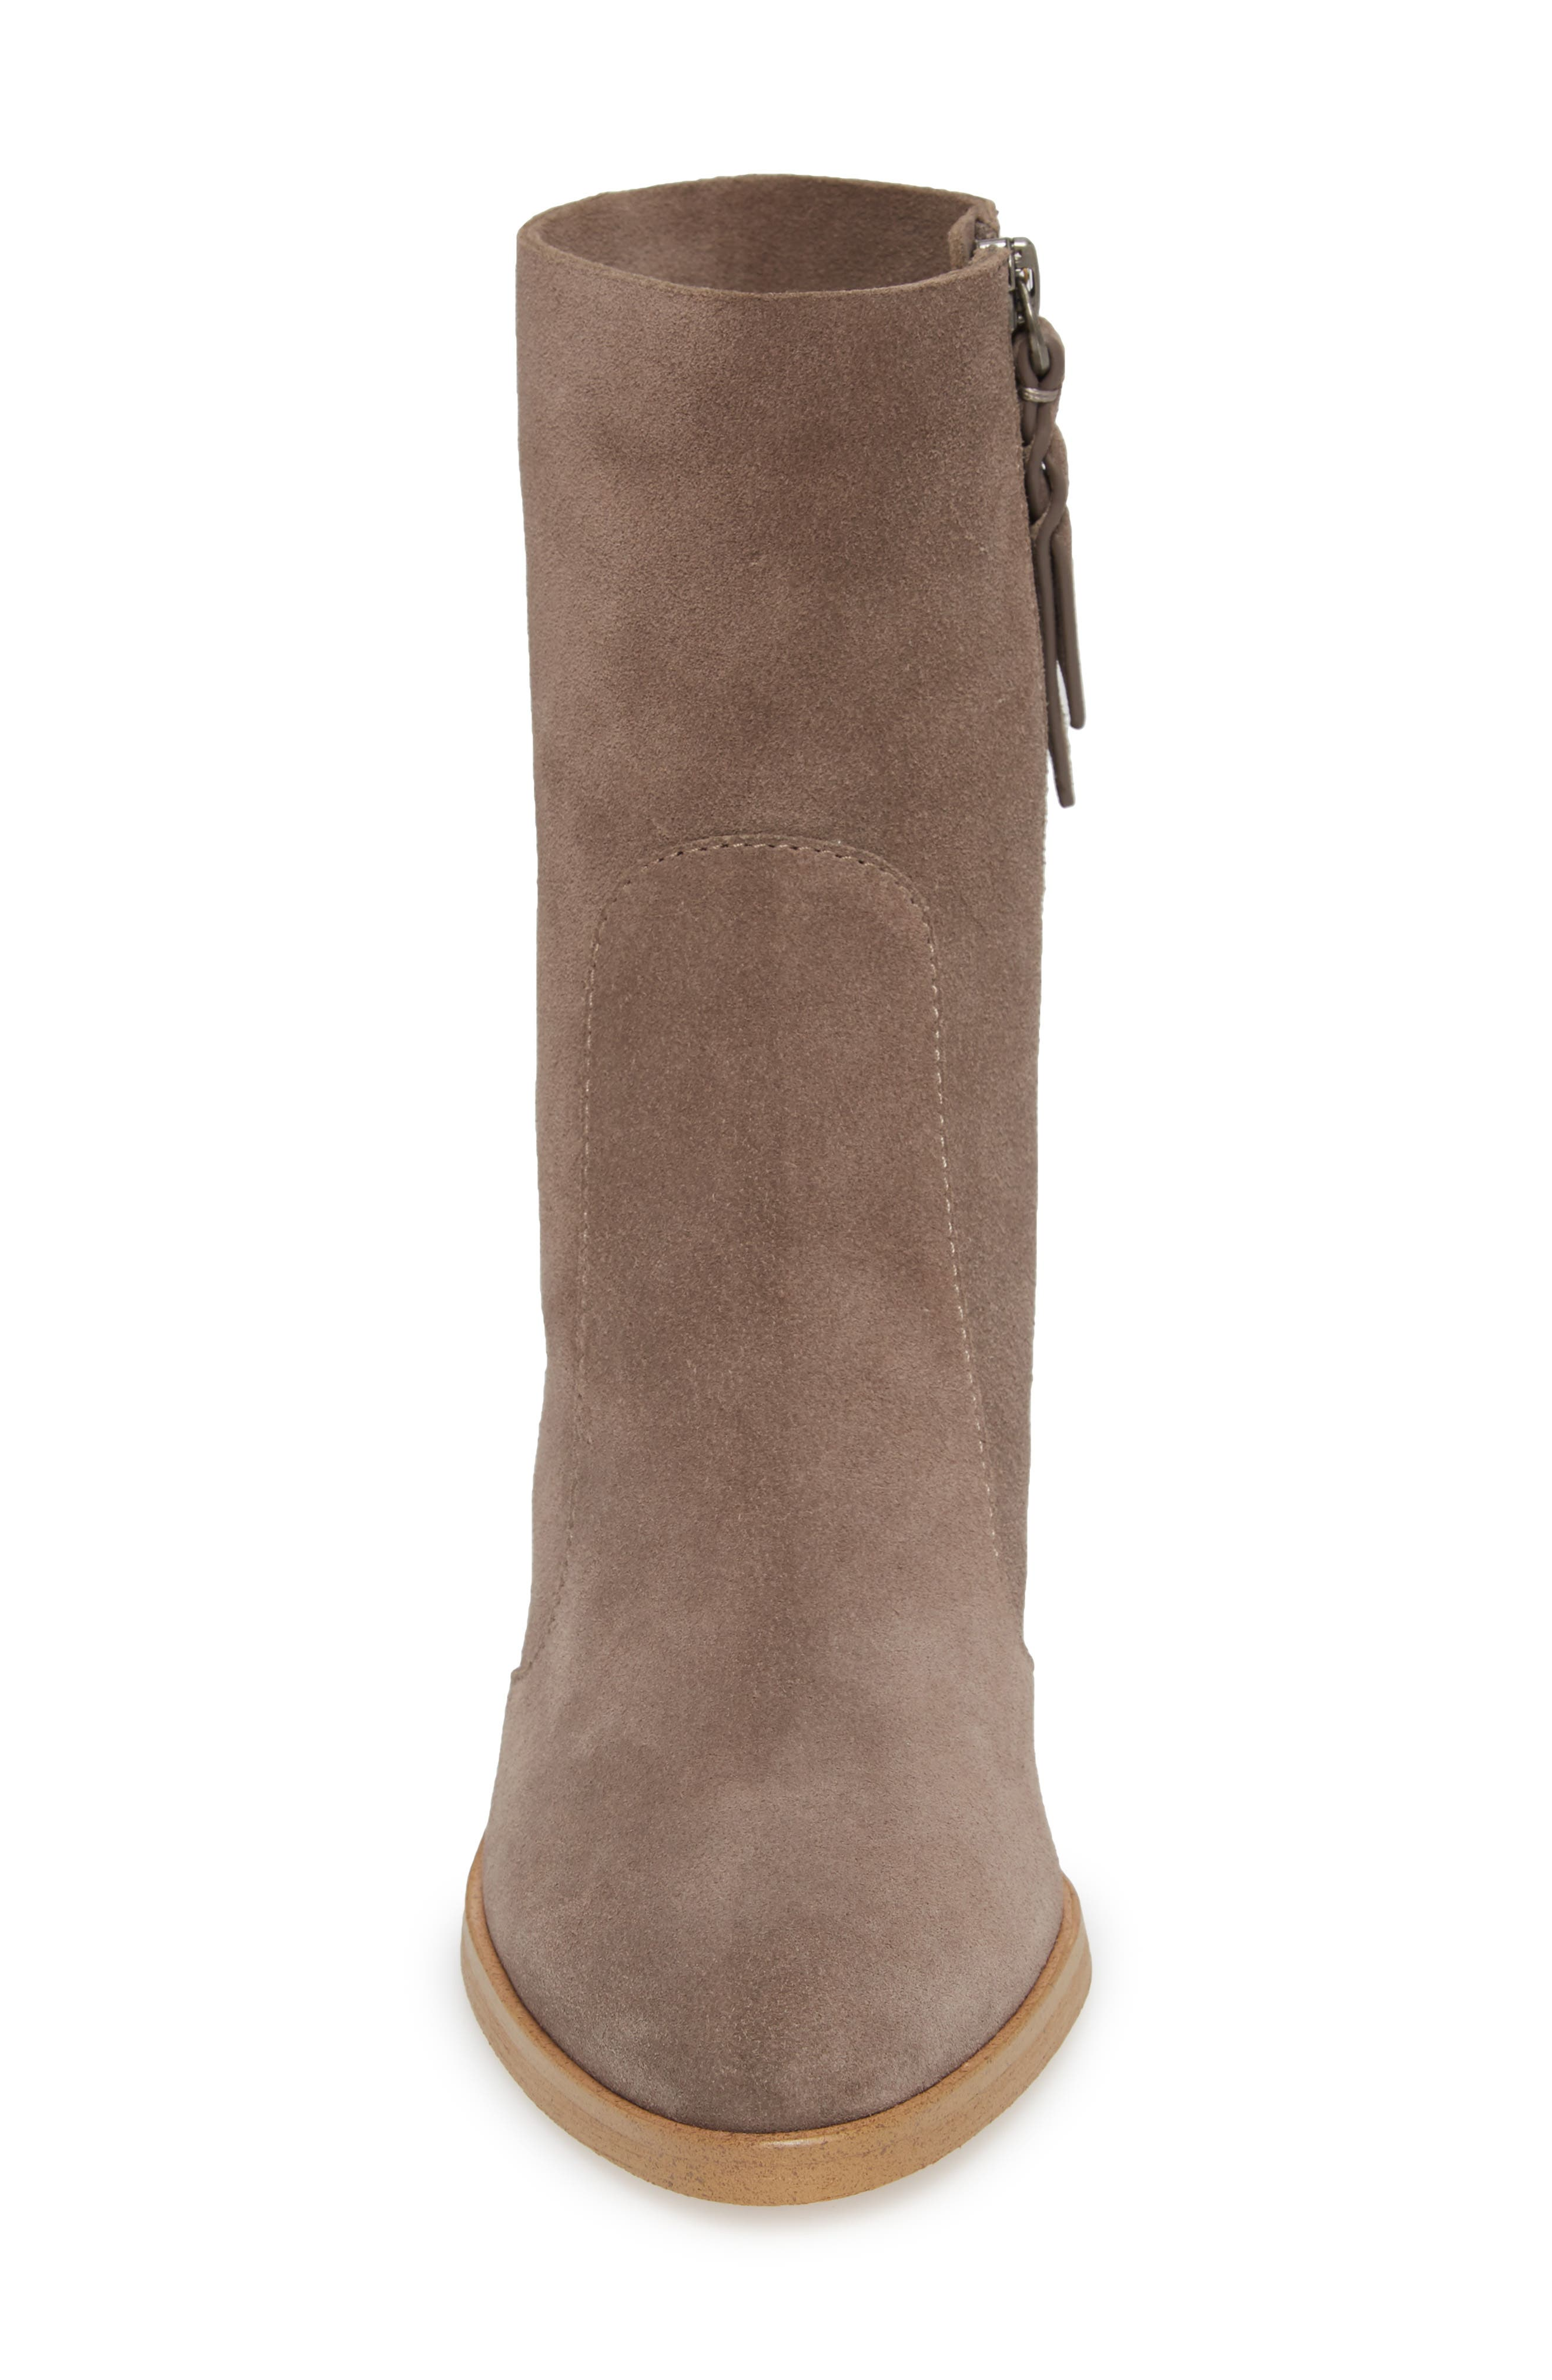 Roselyn II Almond Toe Bootie,                             Alternate thumbnail 4, color,                             LIGHT CHARCOAL SUEDE